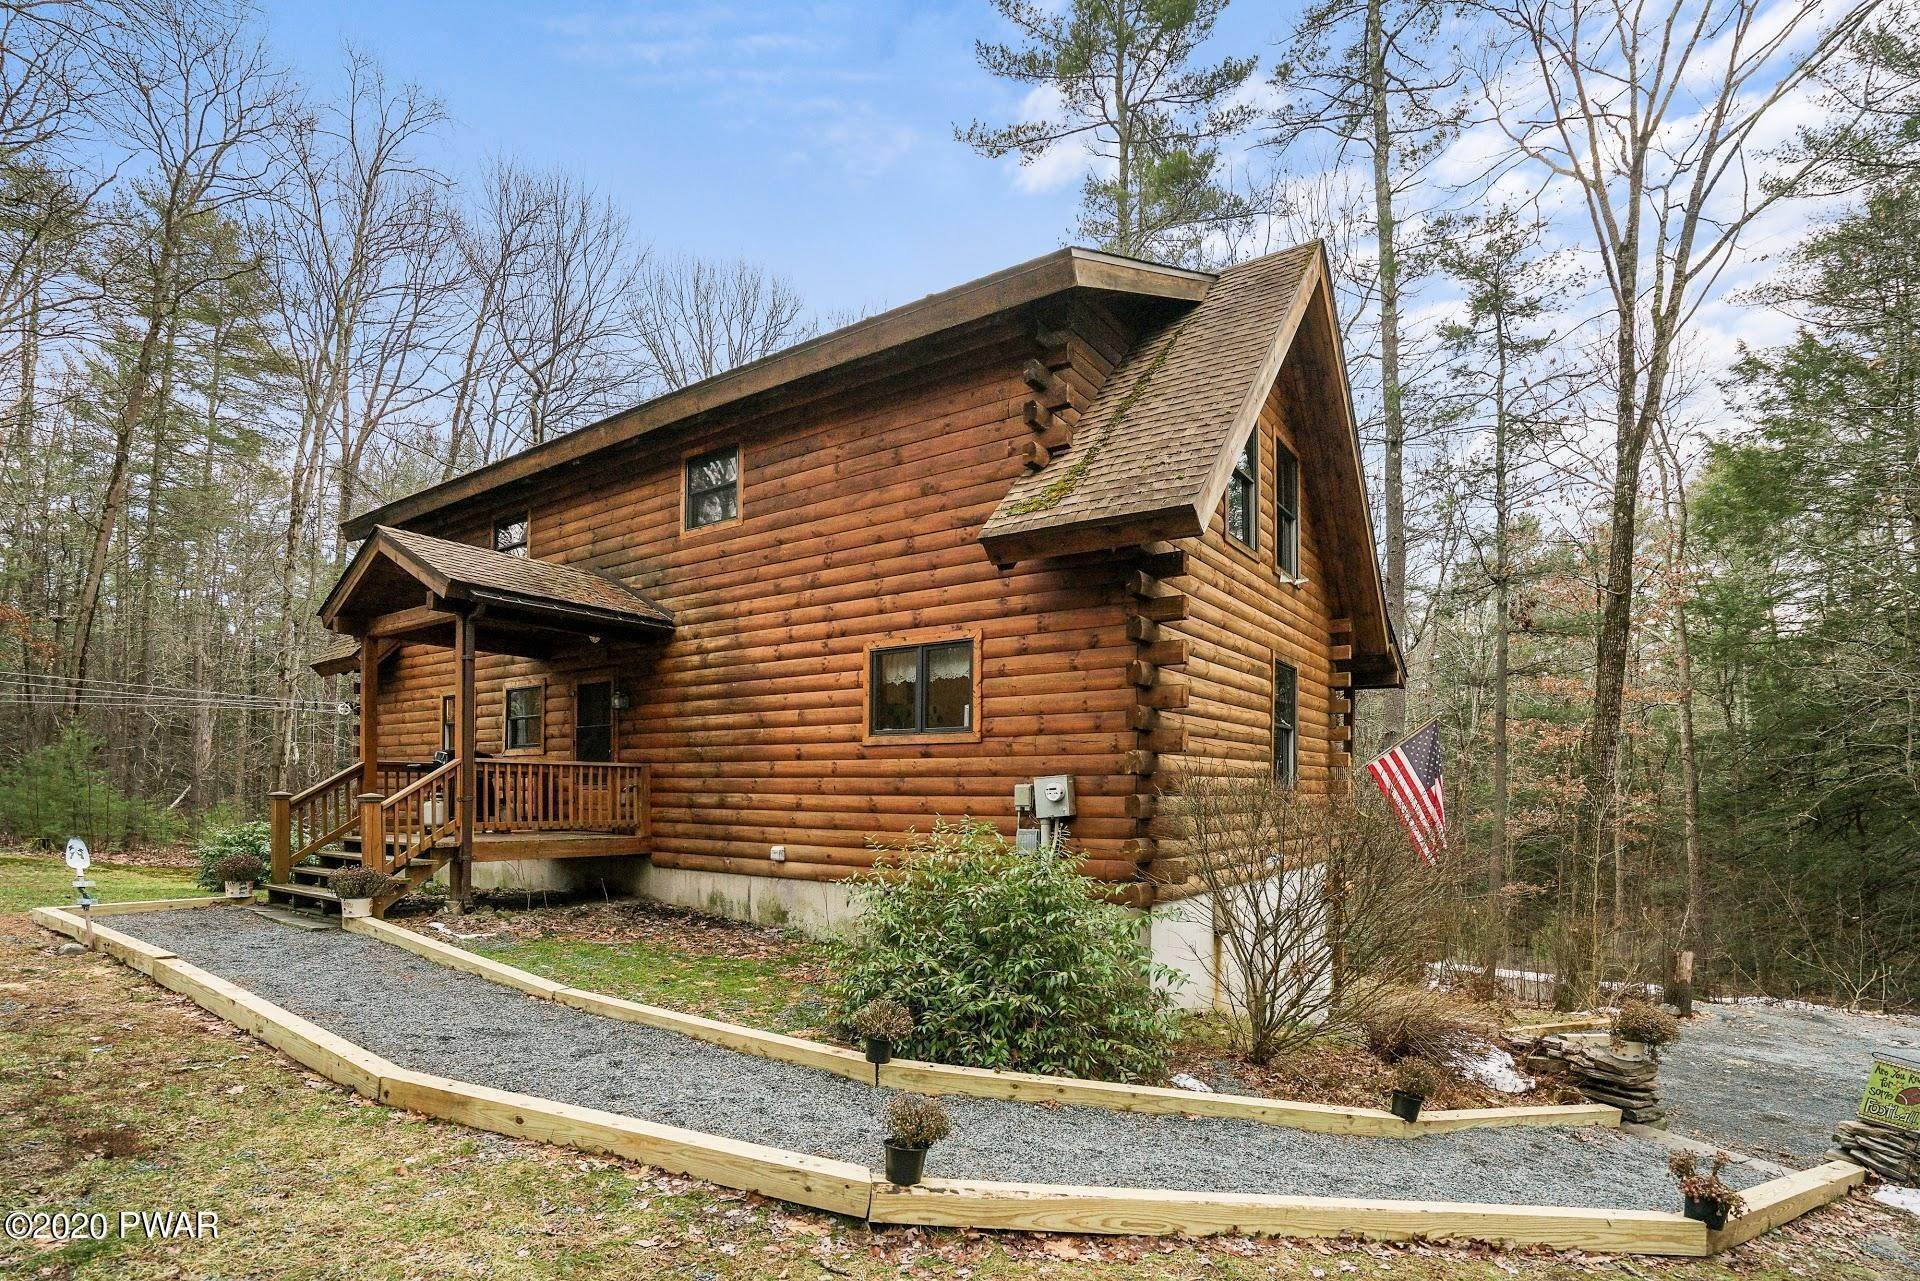 Single Family Homes for Sale at 163 Mckean Valley Rd Shohola, Pennsylvania 18458 United States